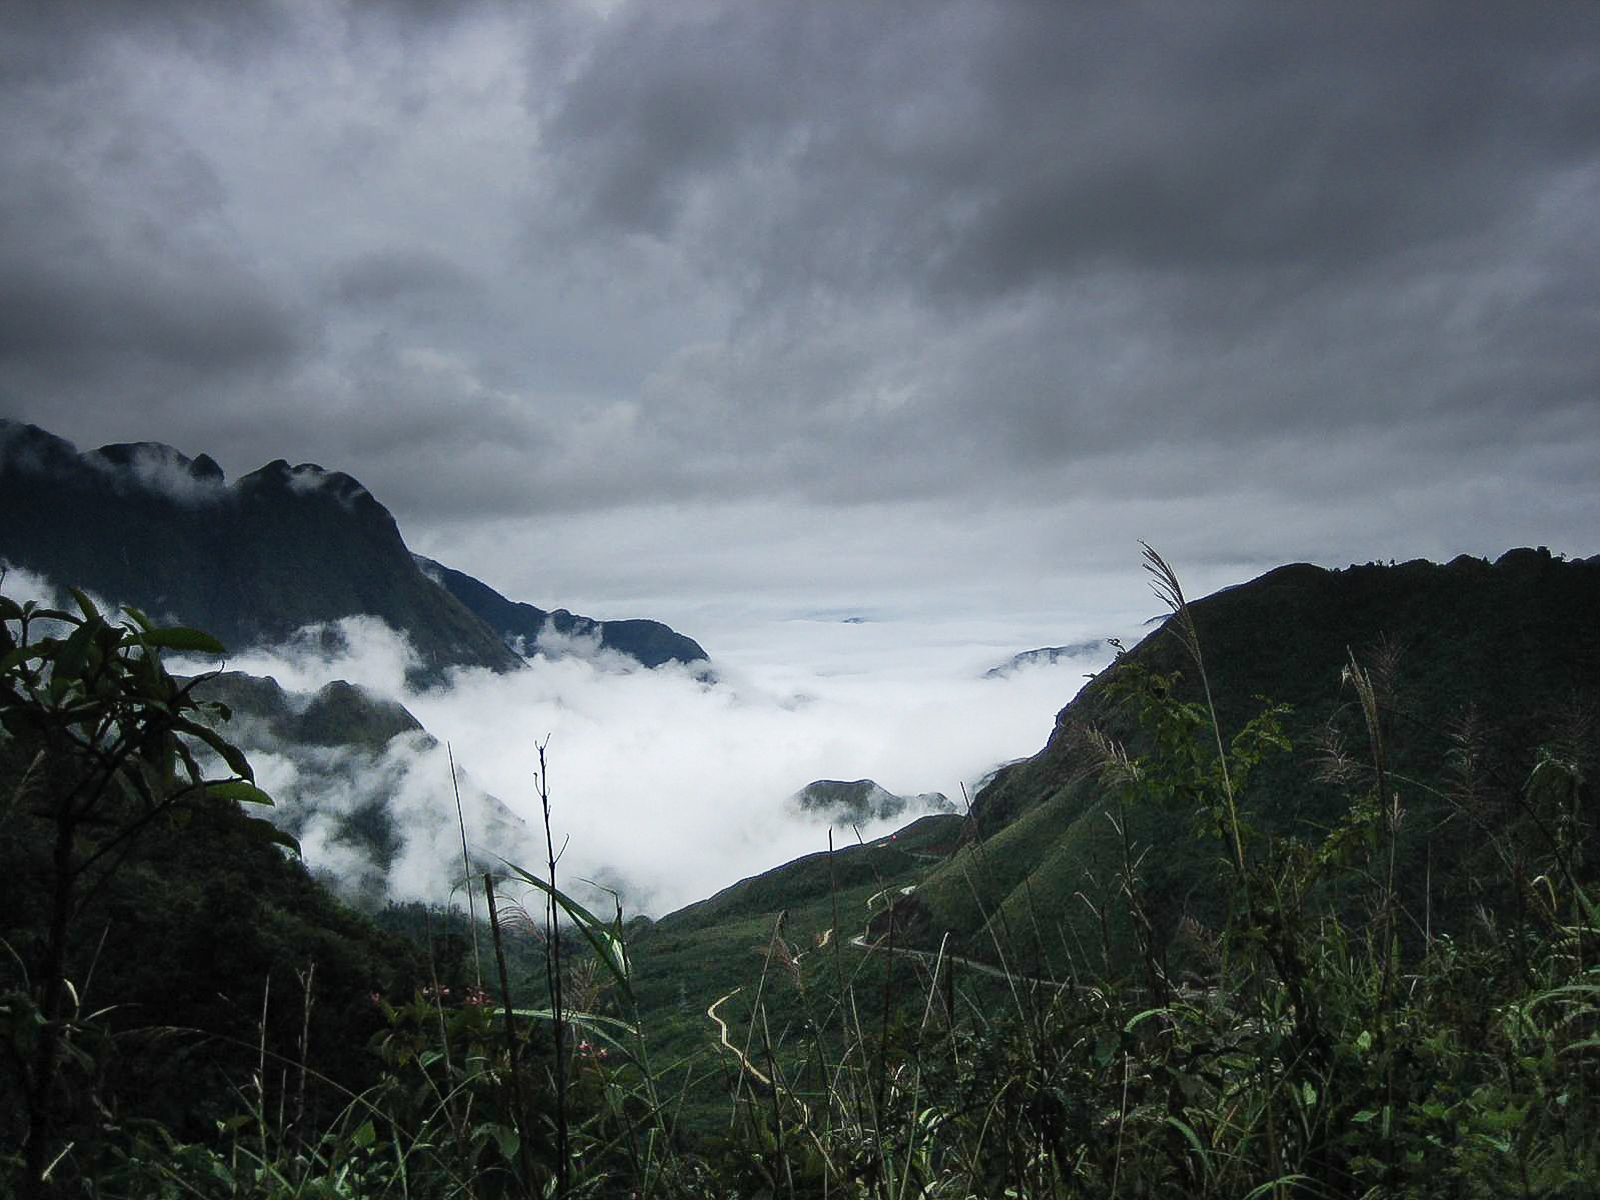 Cloudy day in Hoang Lien Son National Park